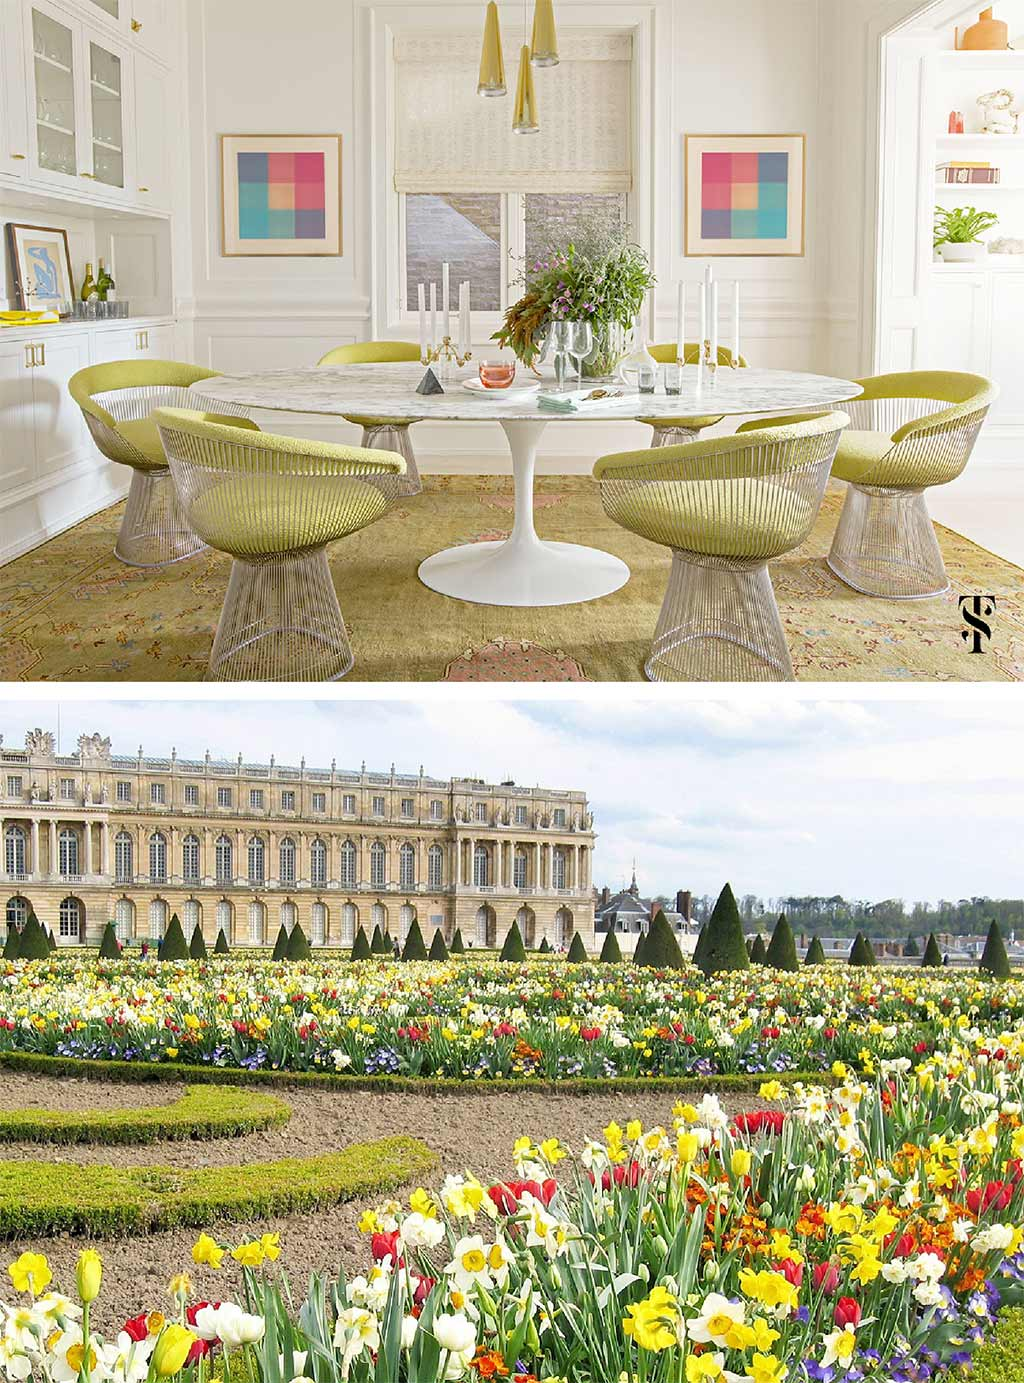 Lincoln Park dining room, chartreuse, by Summer Thornton Design. Gardens at Chateau de Versailles, France, daffodils, tulips, trees, Trover, Mark Rentz.